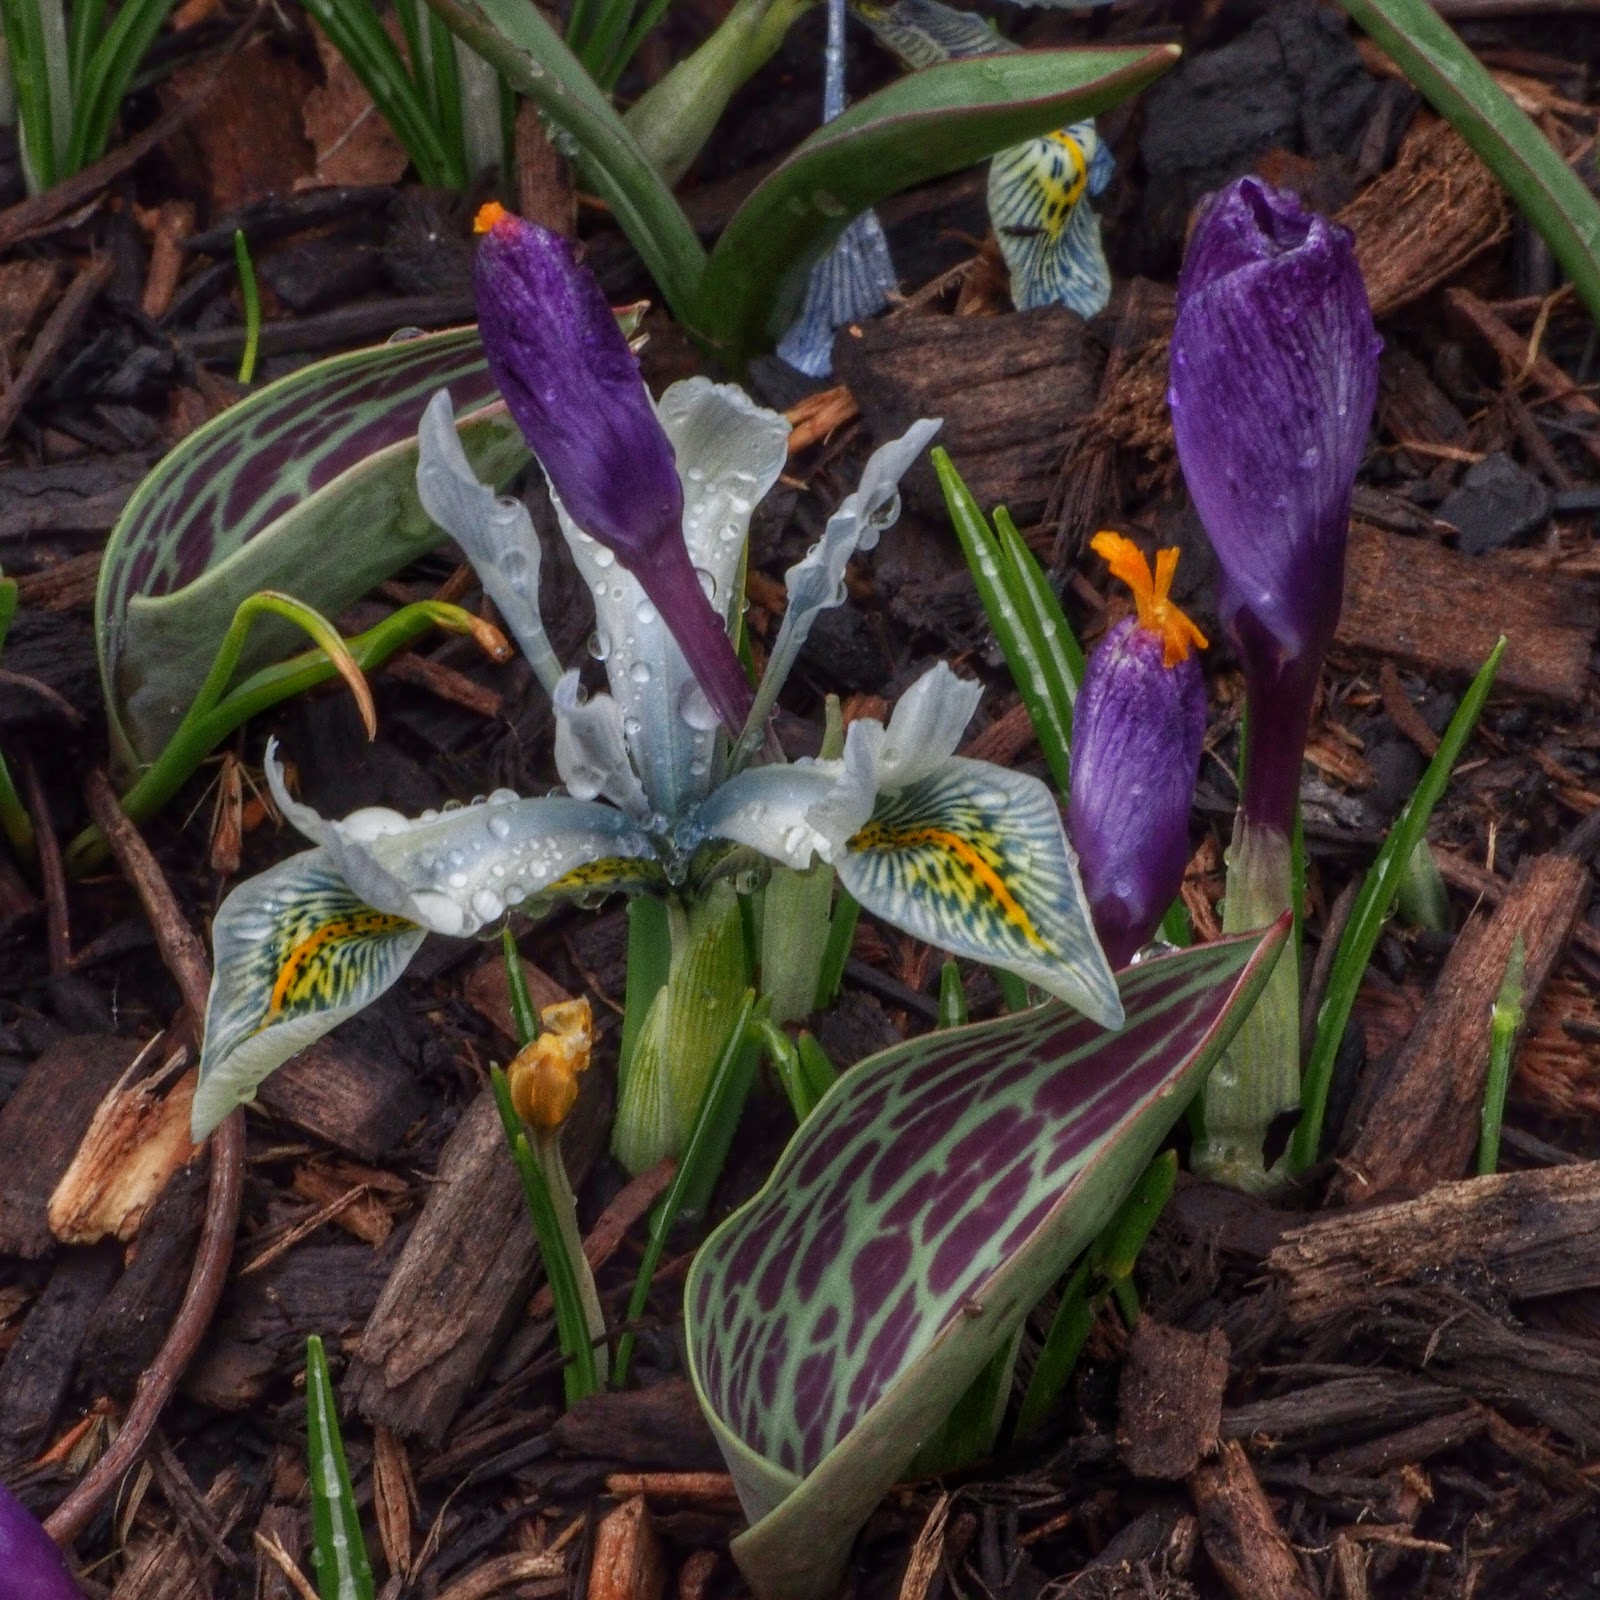 Mixed Bouquet OR Crocus on the Cusp, #NYC #iris #crocus #conservatory garden #centralpark 2014